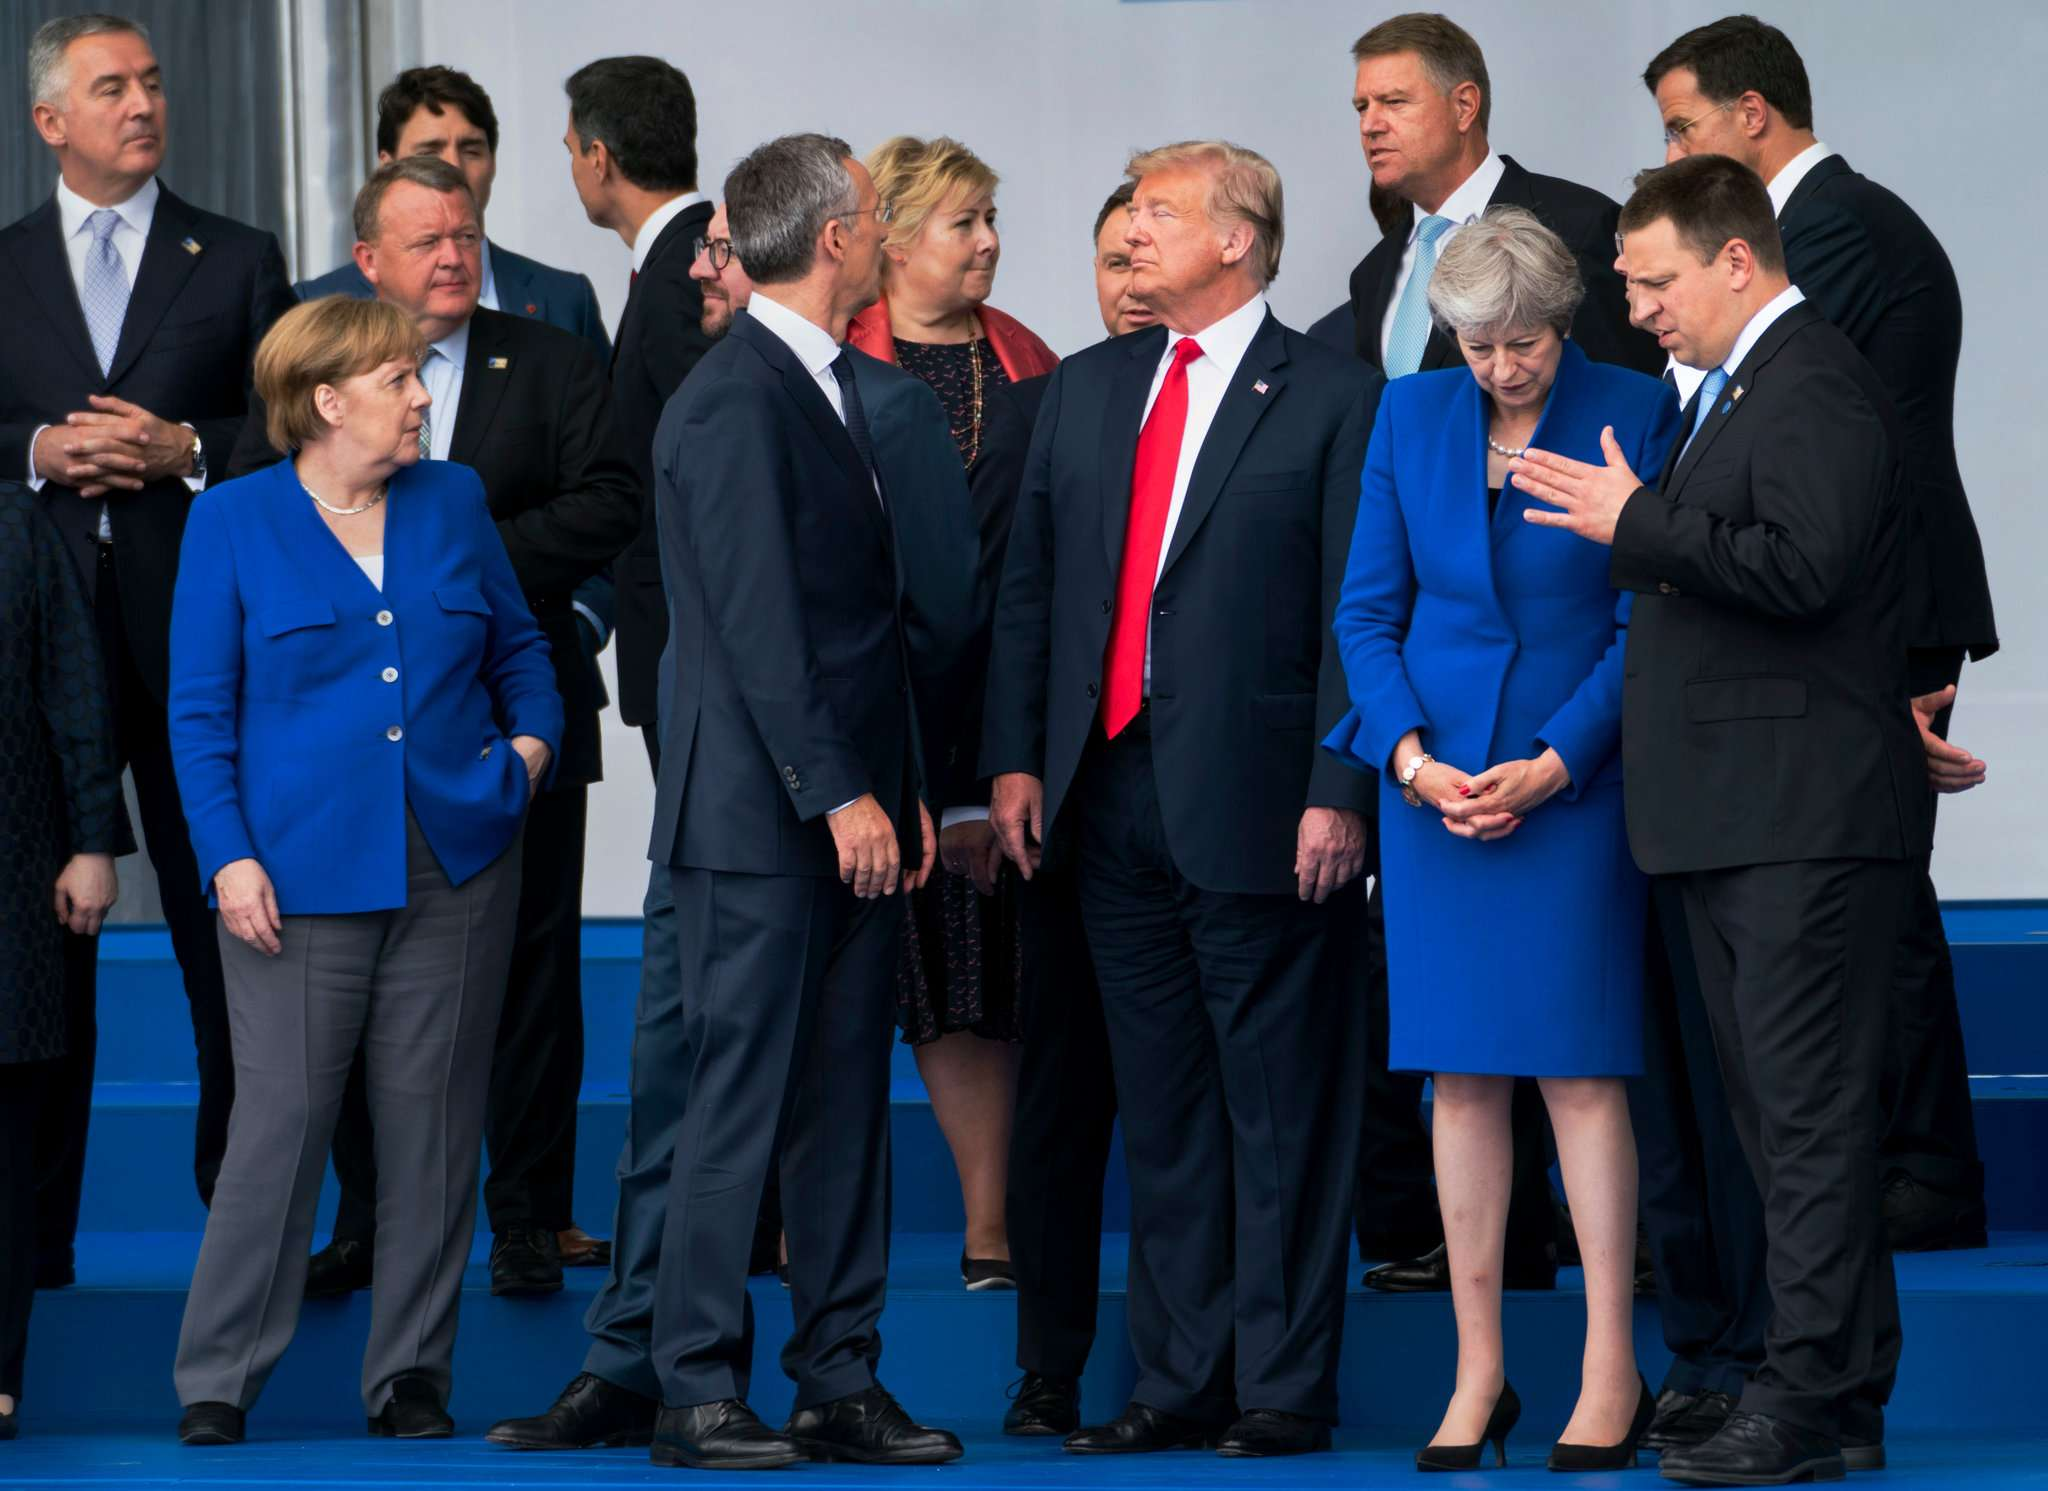 #FactOfTheDay 12/07/2018 – Like a bull in China shop, Trump at the NATO summit